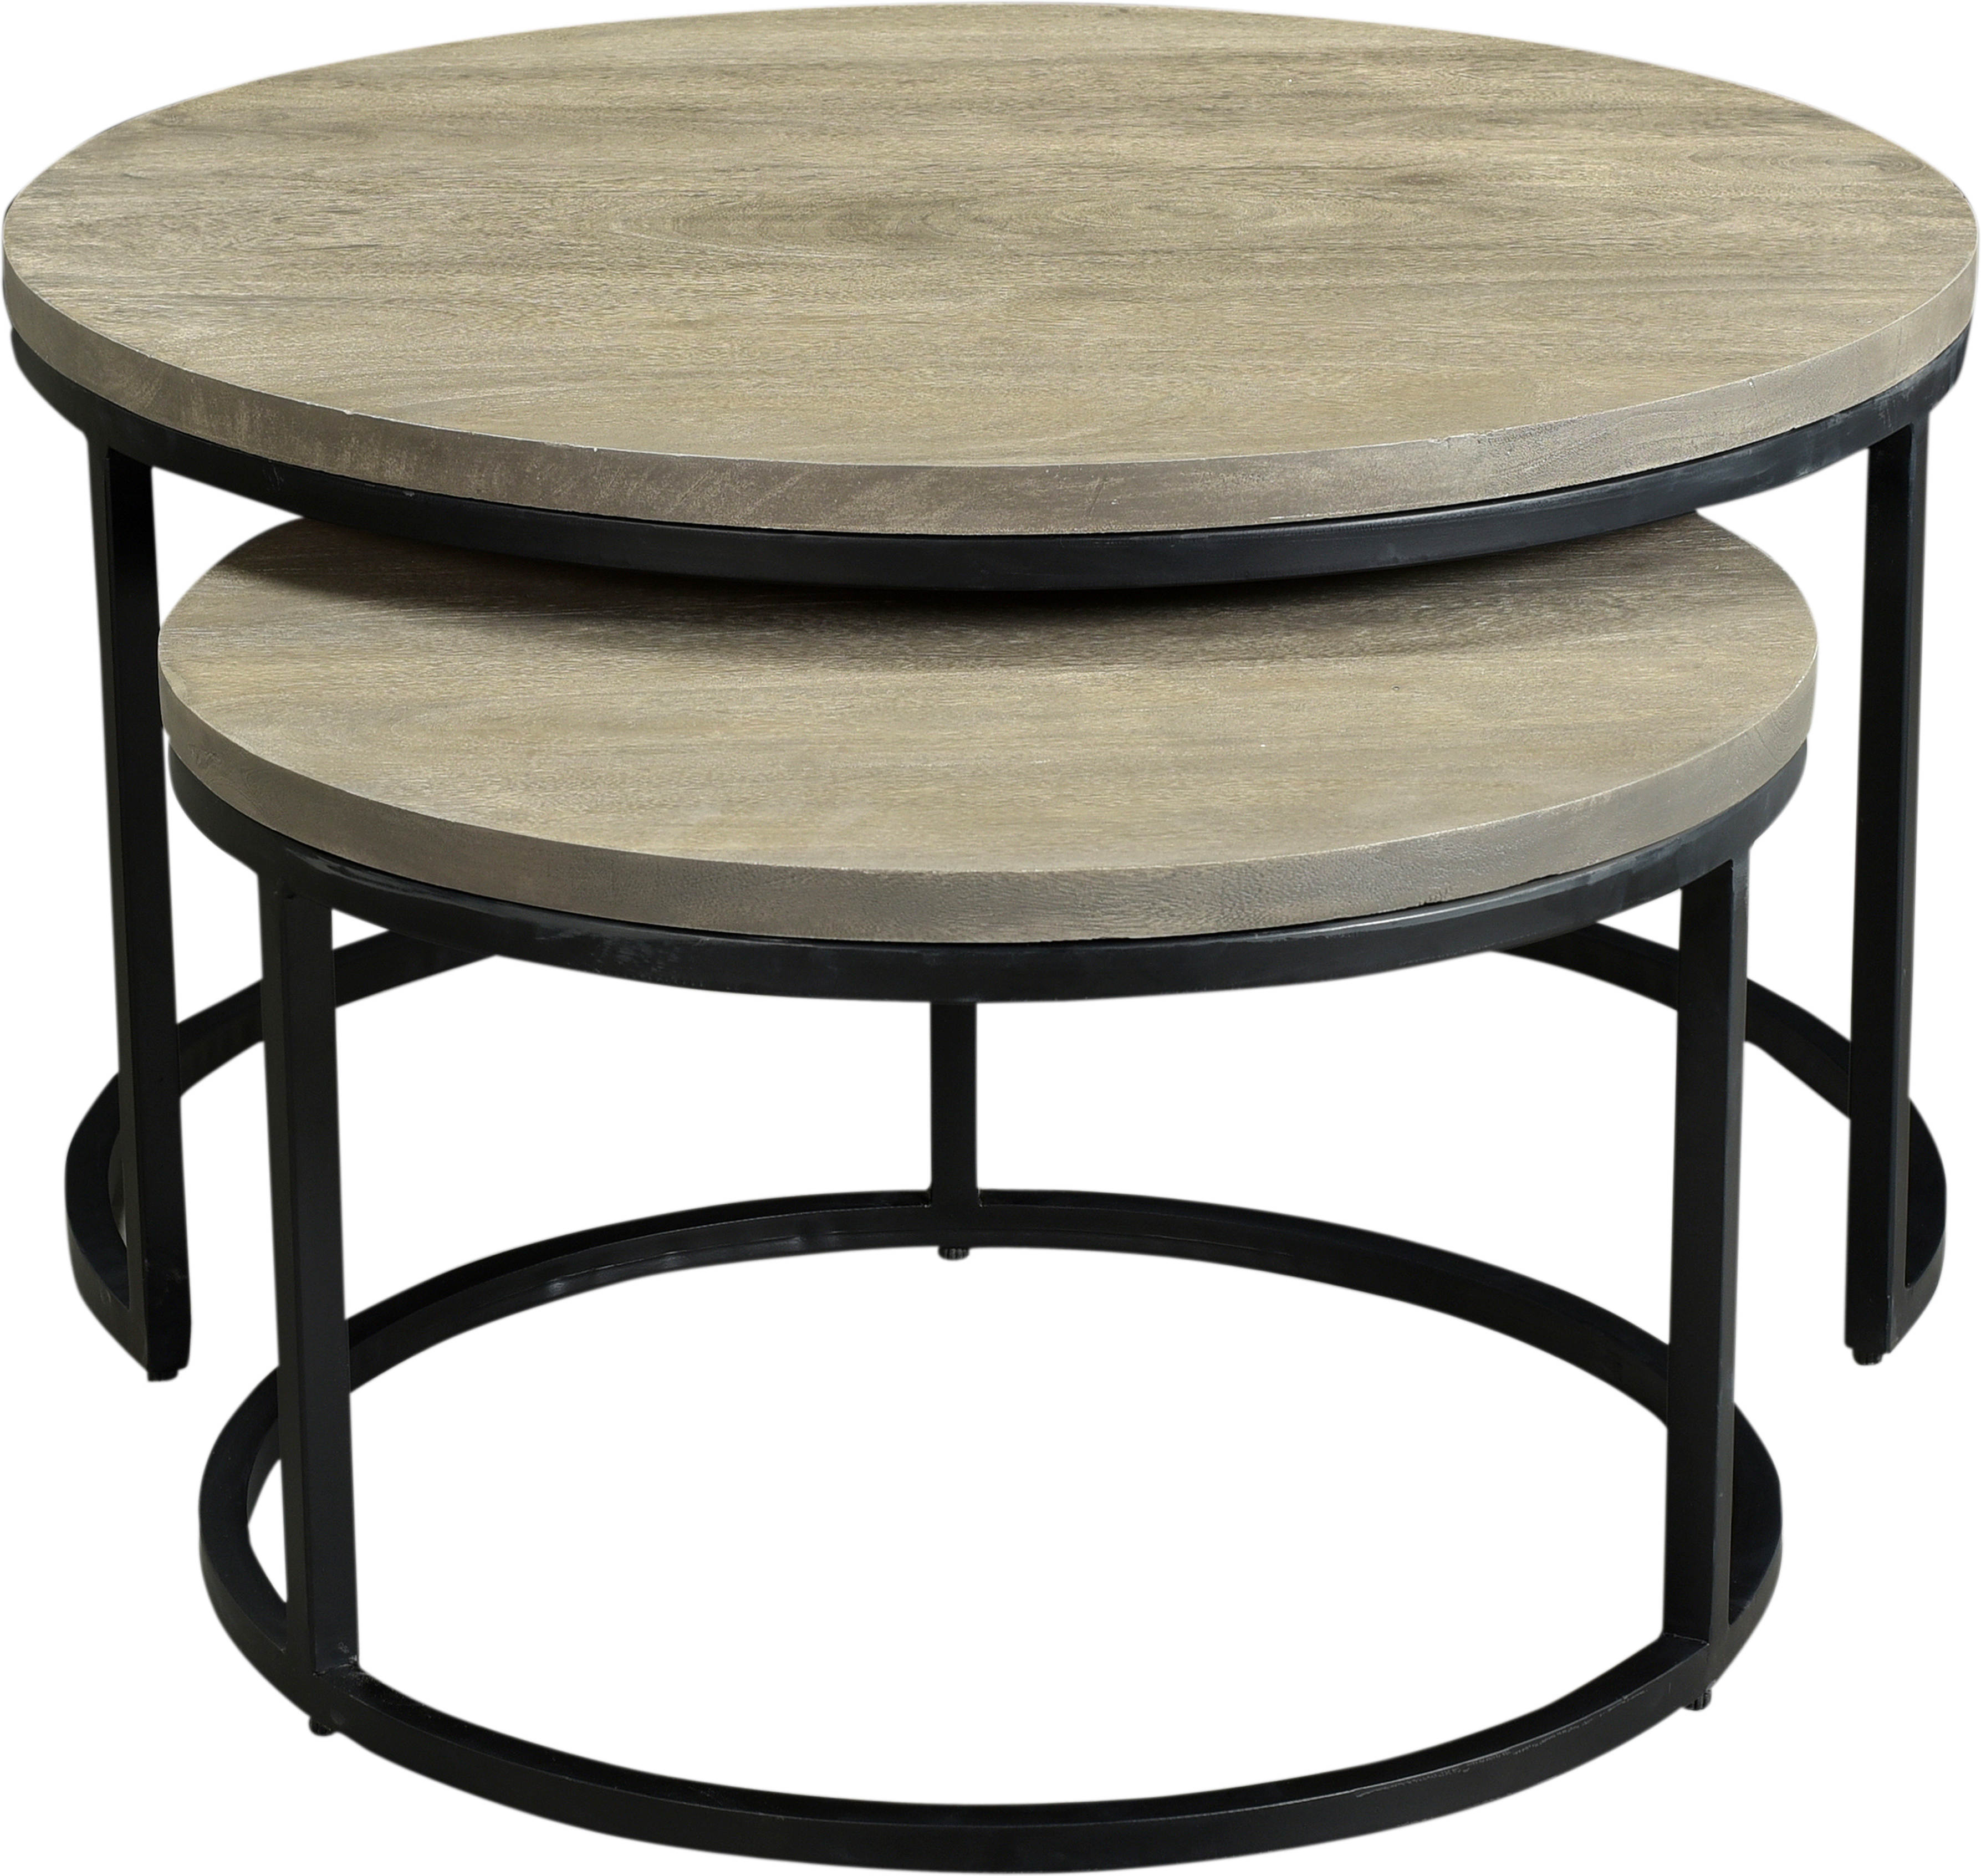 Moes Home Drey Grey Round 2pc Nesting Coffee Table